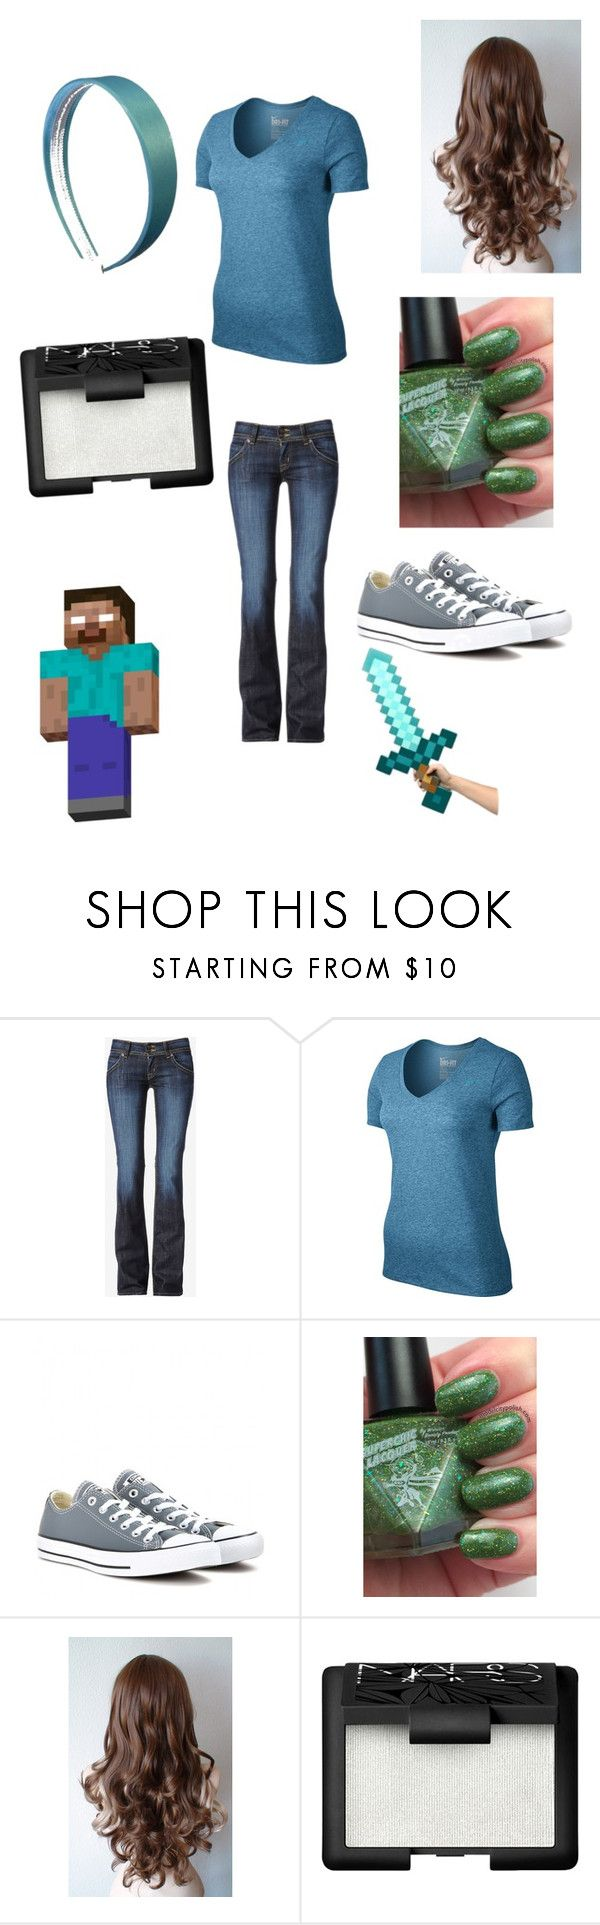 """""""Herobrine outfit"""" by ender1027 ❤ liked on Polyvore featuring Hudson Jeans, NIKE, Converse, NARS Cosmetics and Minecraft"""